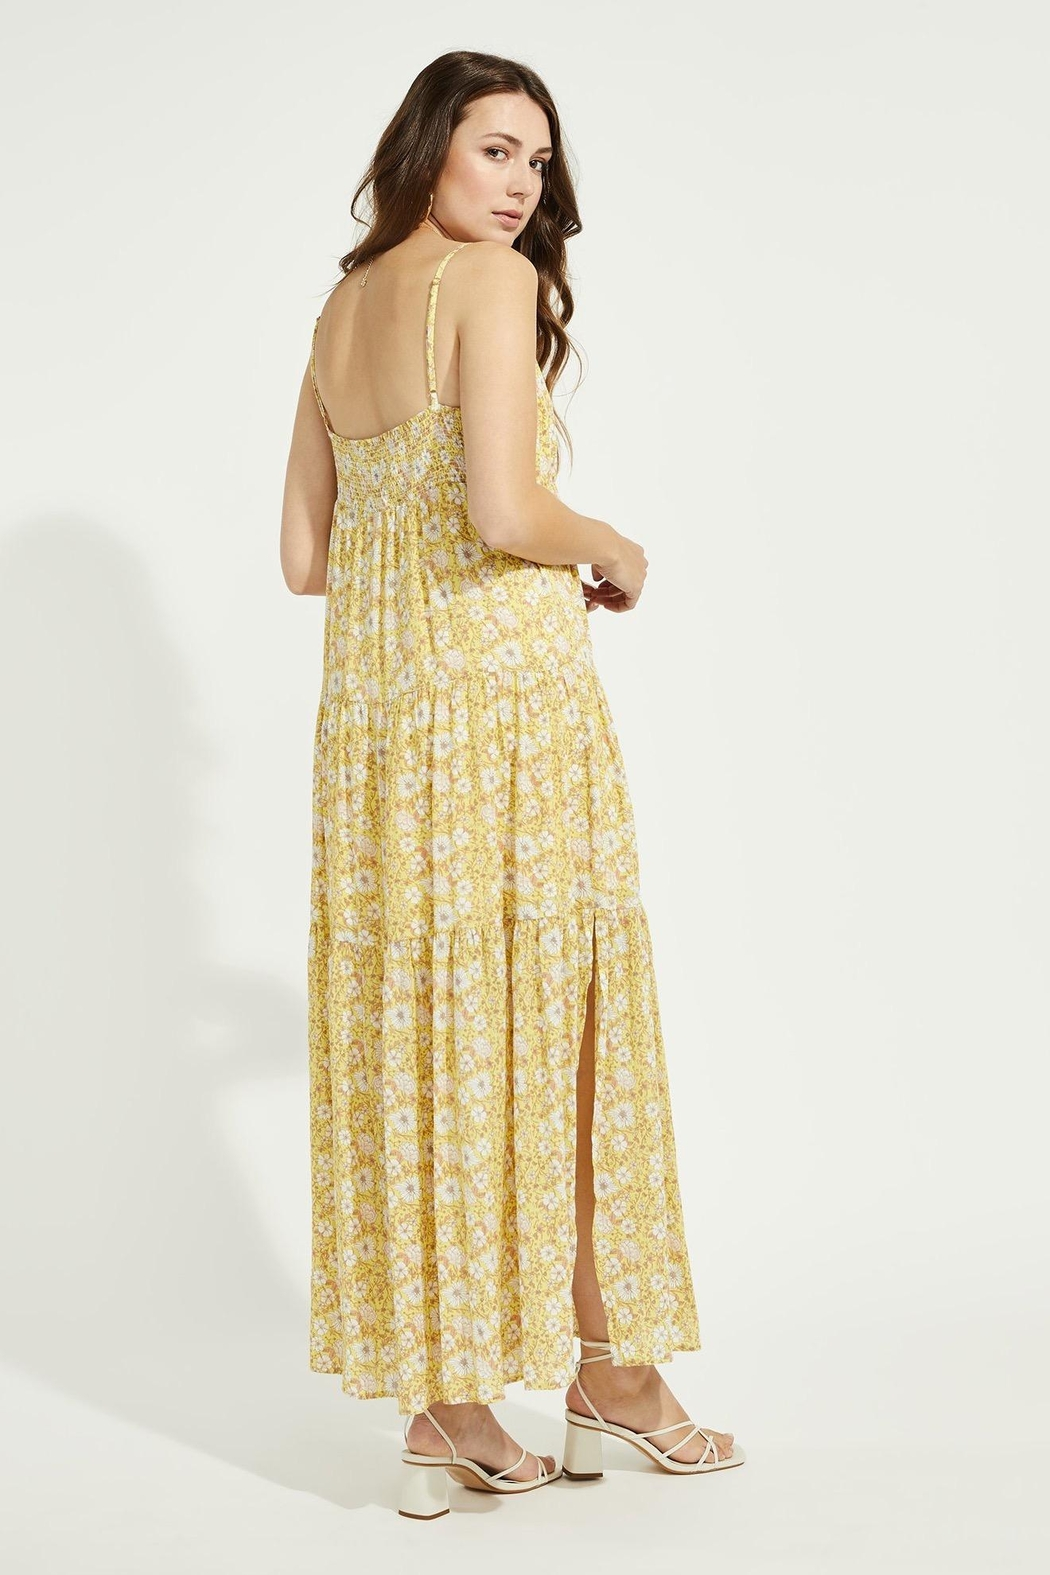 Gentle Fawn Monterey Floral Maxi Dress - Front Full Image